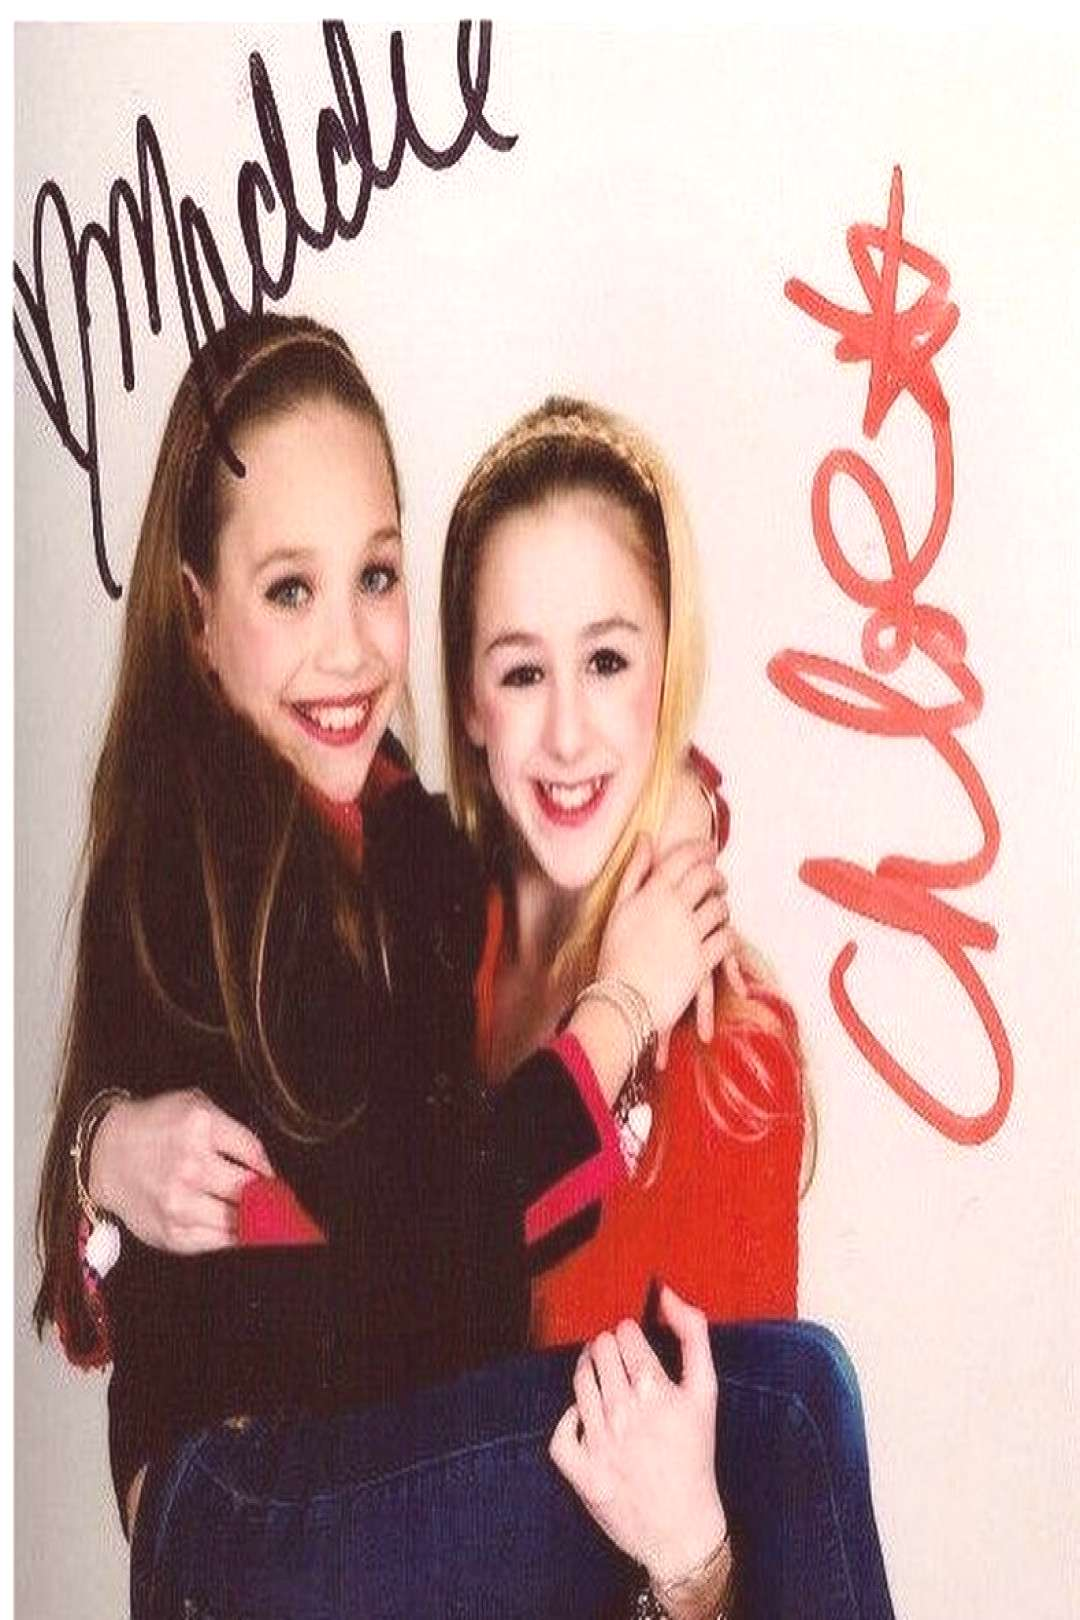 dance moms edits on June 08 2020 and 2 people people smiling